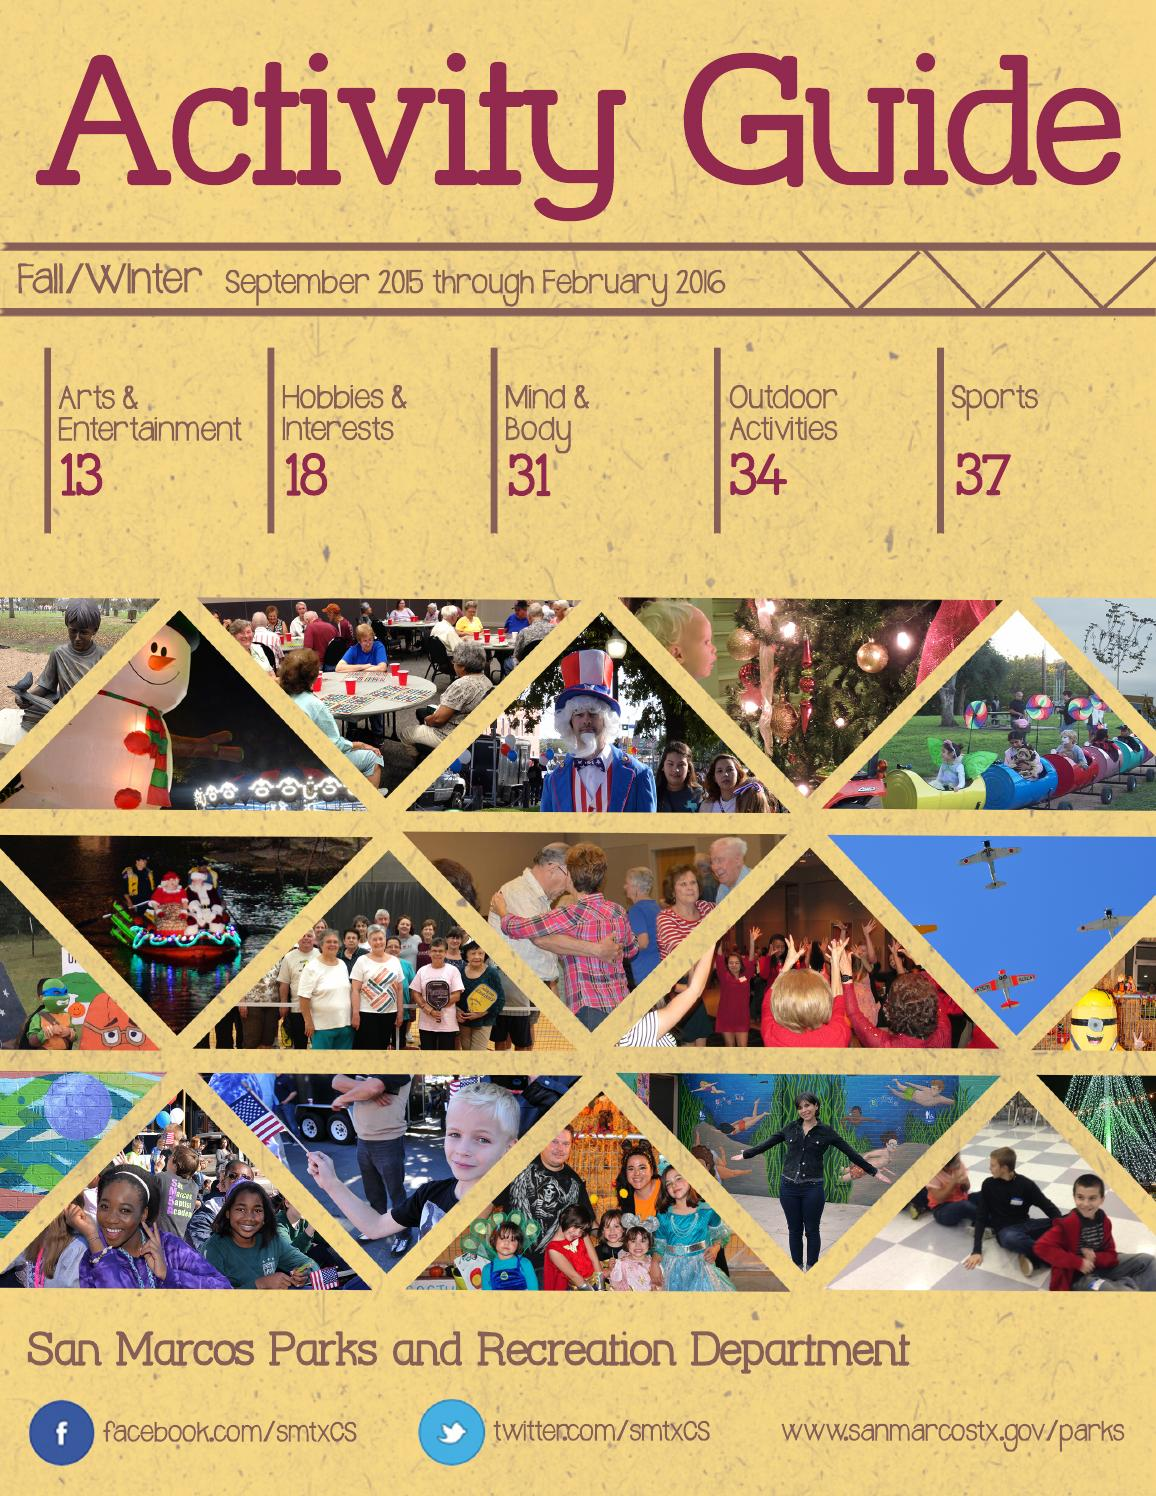 2015-2016 Fall/Winter Activity Guide by San Marcos Parks & Recreation  Department - issuu